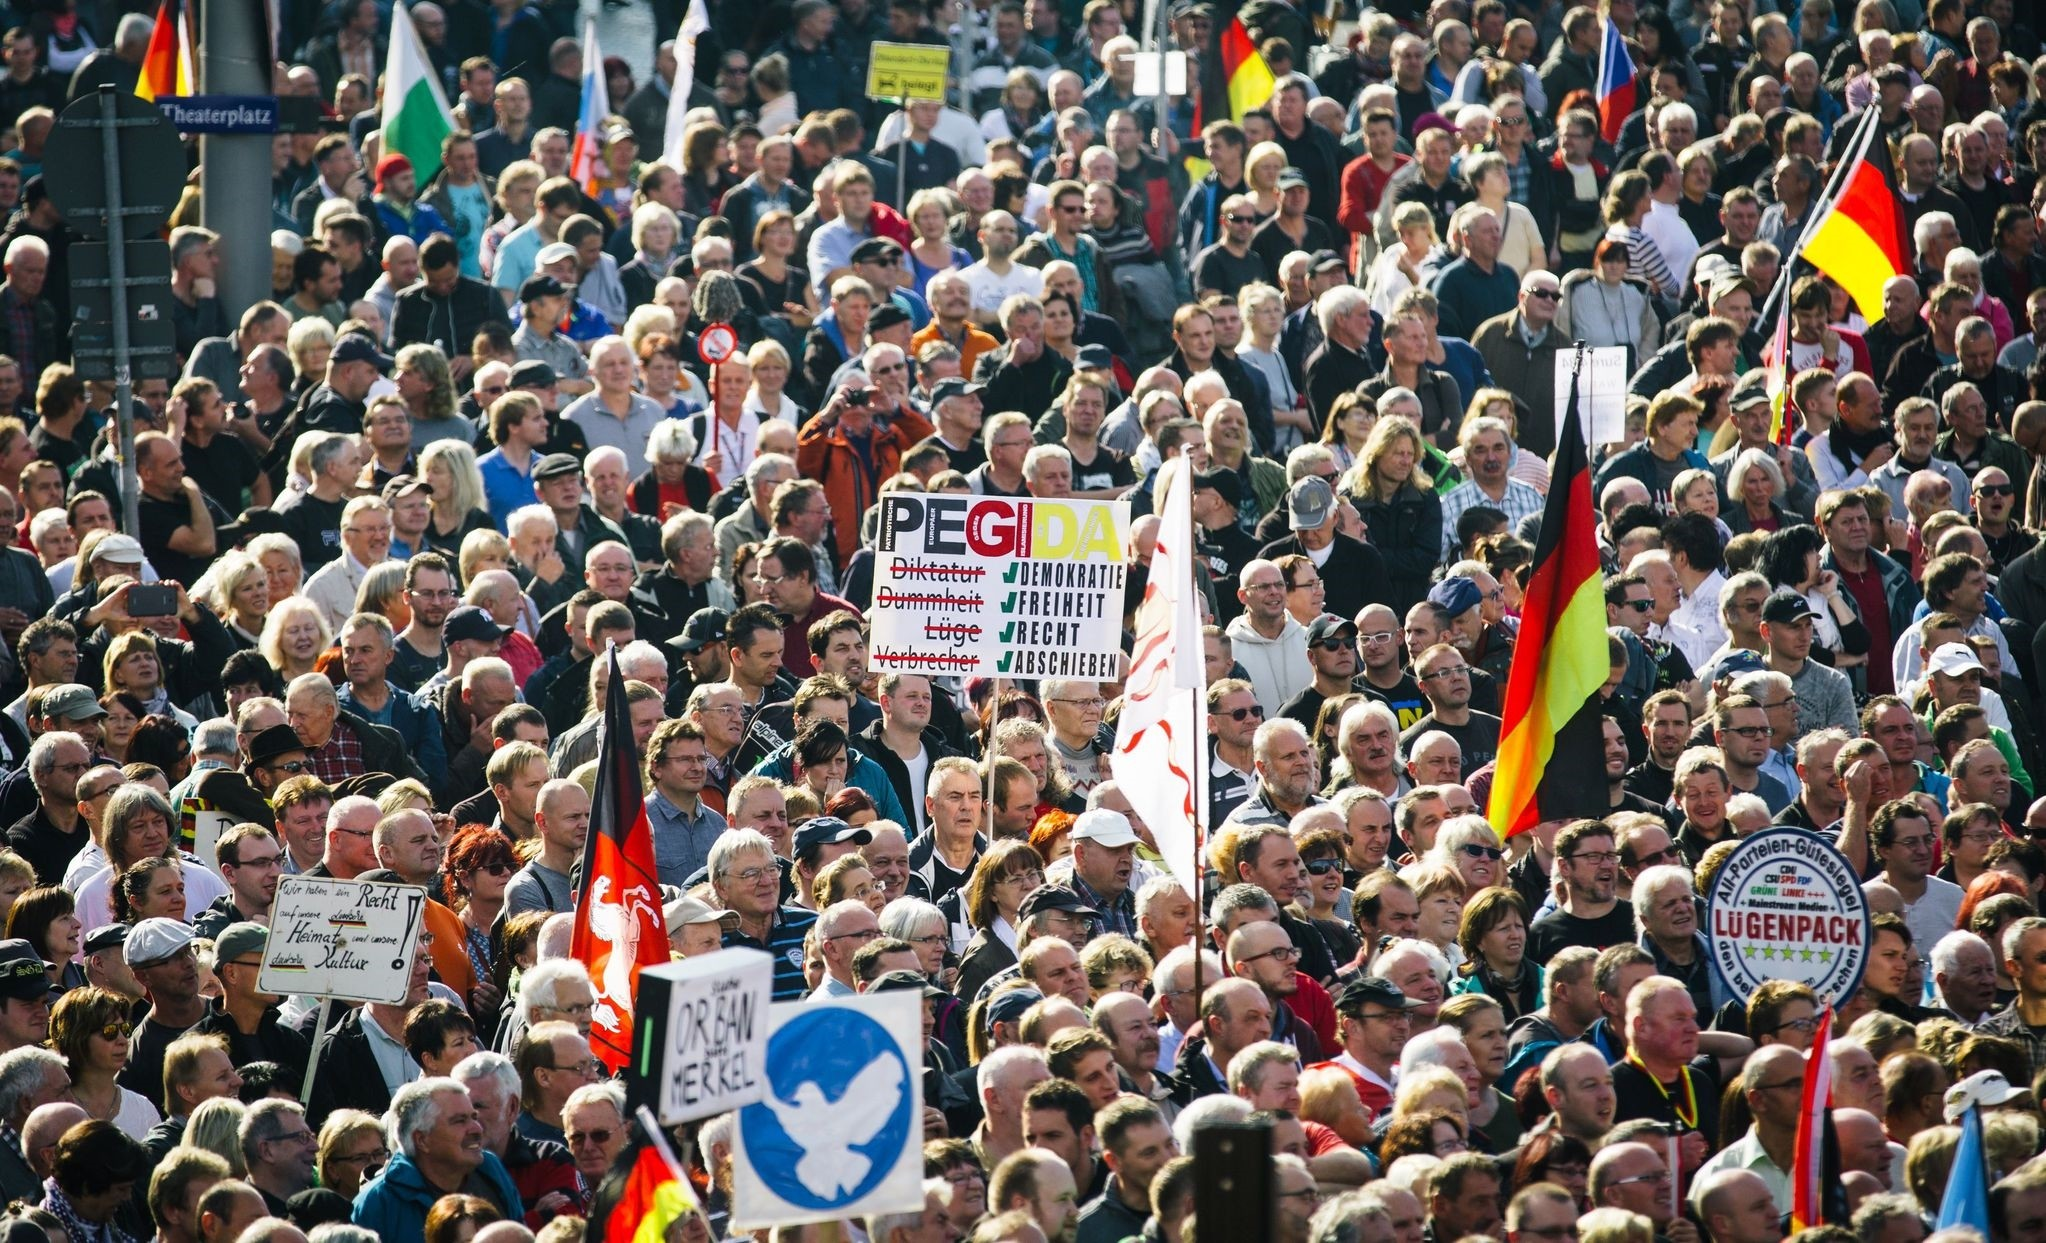 Supporters of the anti-immigrant Pegida movement mark their second year of existence as they demonstrate in Dresden, eastern Germany, on October 16 2016. (AFP Photo)